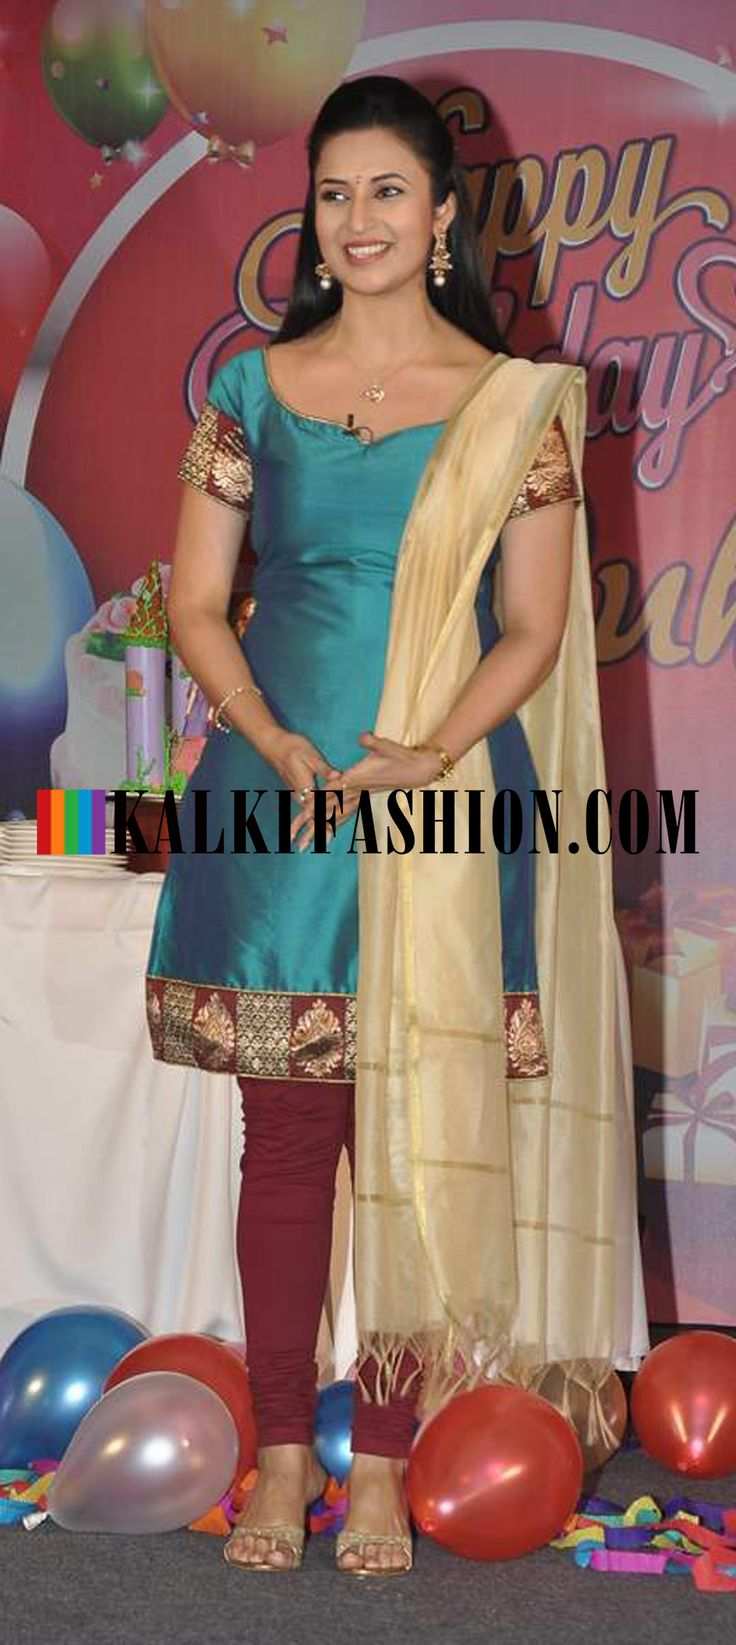 http://www.kalkifashion.com/ Divyanka Tripathi in a blue and red suit at the promotion of her new serial Yeh Hai Mohabbat